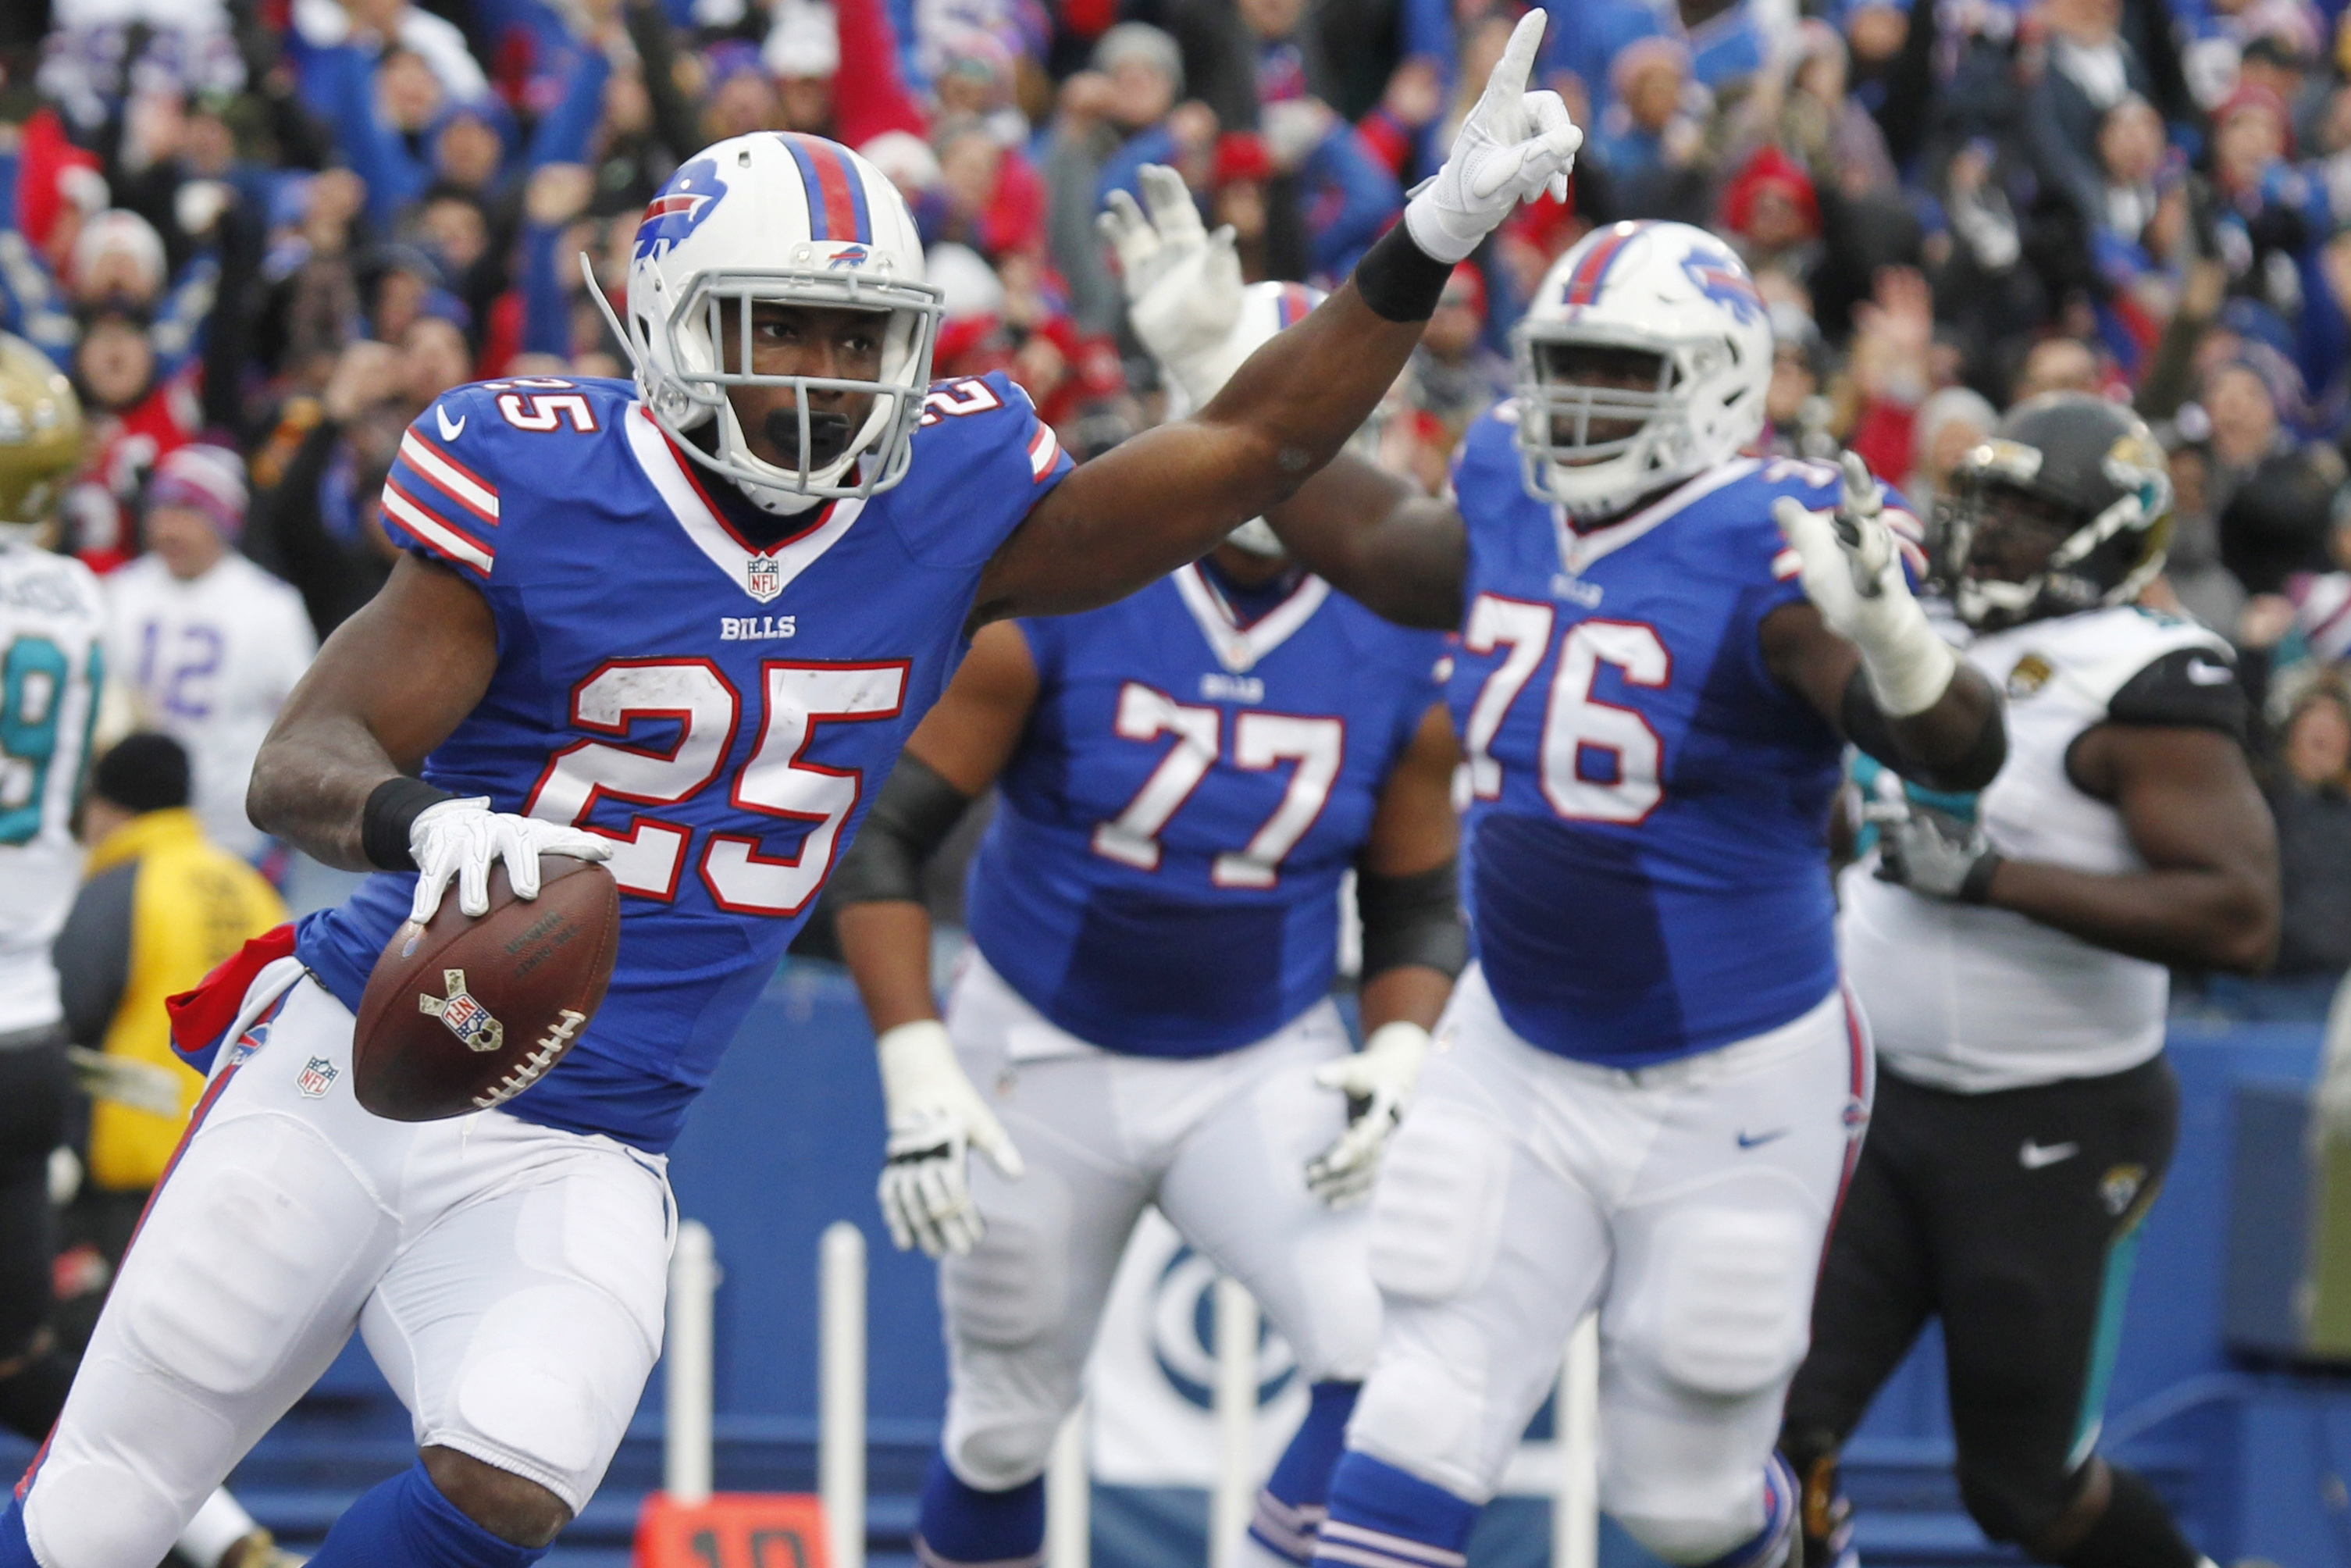 Buffalo Bills running back LeSean McCoy (25) celebrates after rushing for a touchdown during the first half of an NFL football game against the Jacksonville Jaguars on Sunday, Nov. 27, 2016, in Orchard Park, N.Y. (AP Photo/Jeffrey T. Barnes)